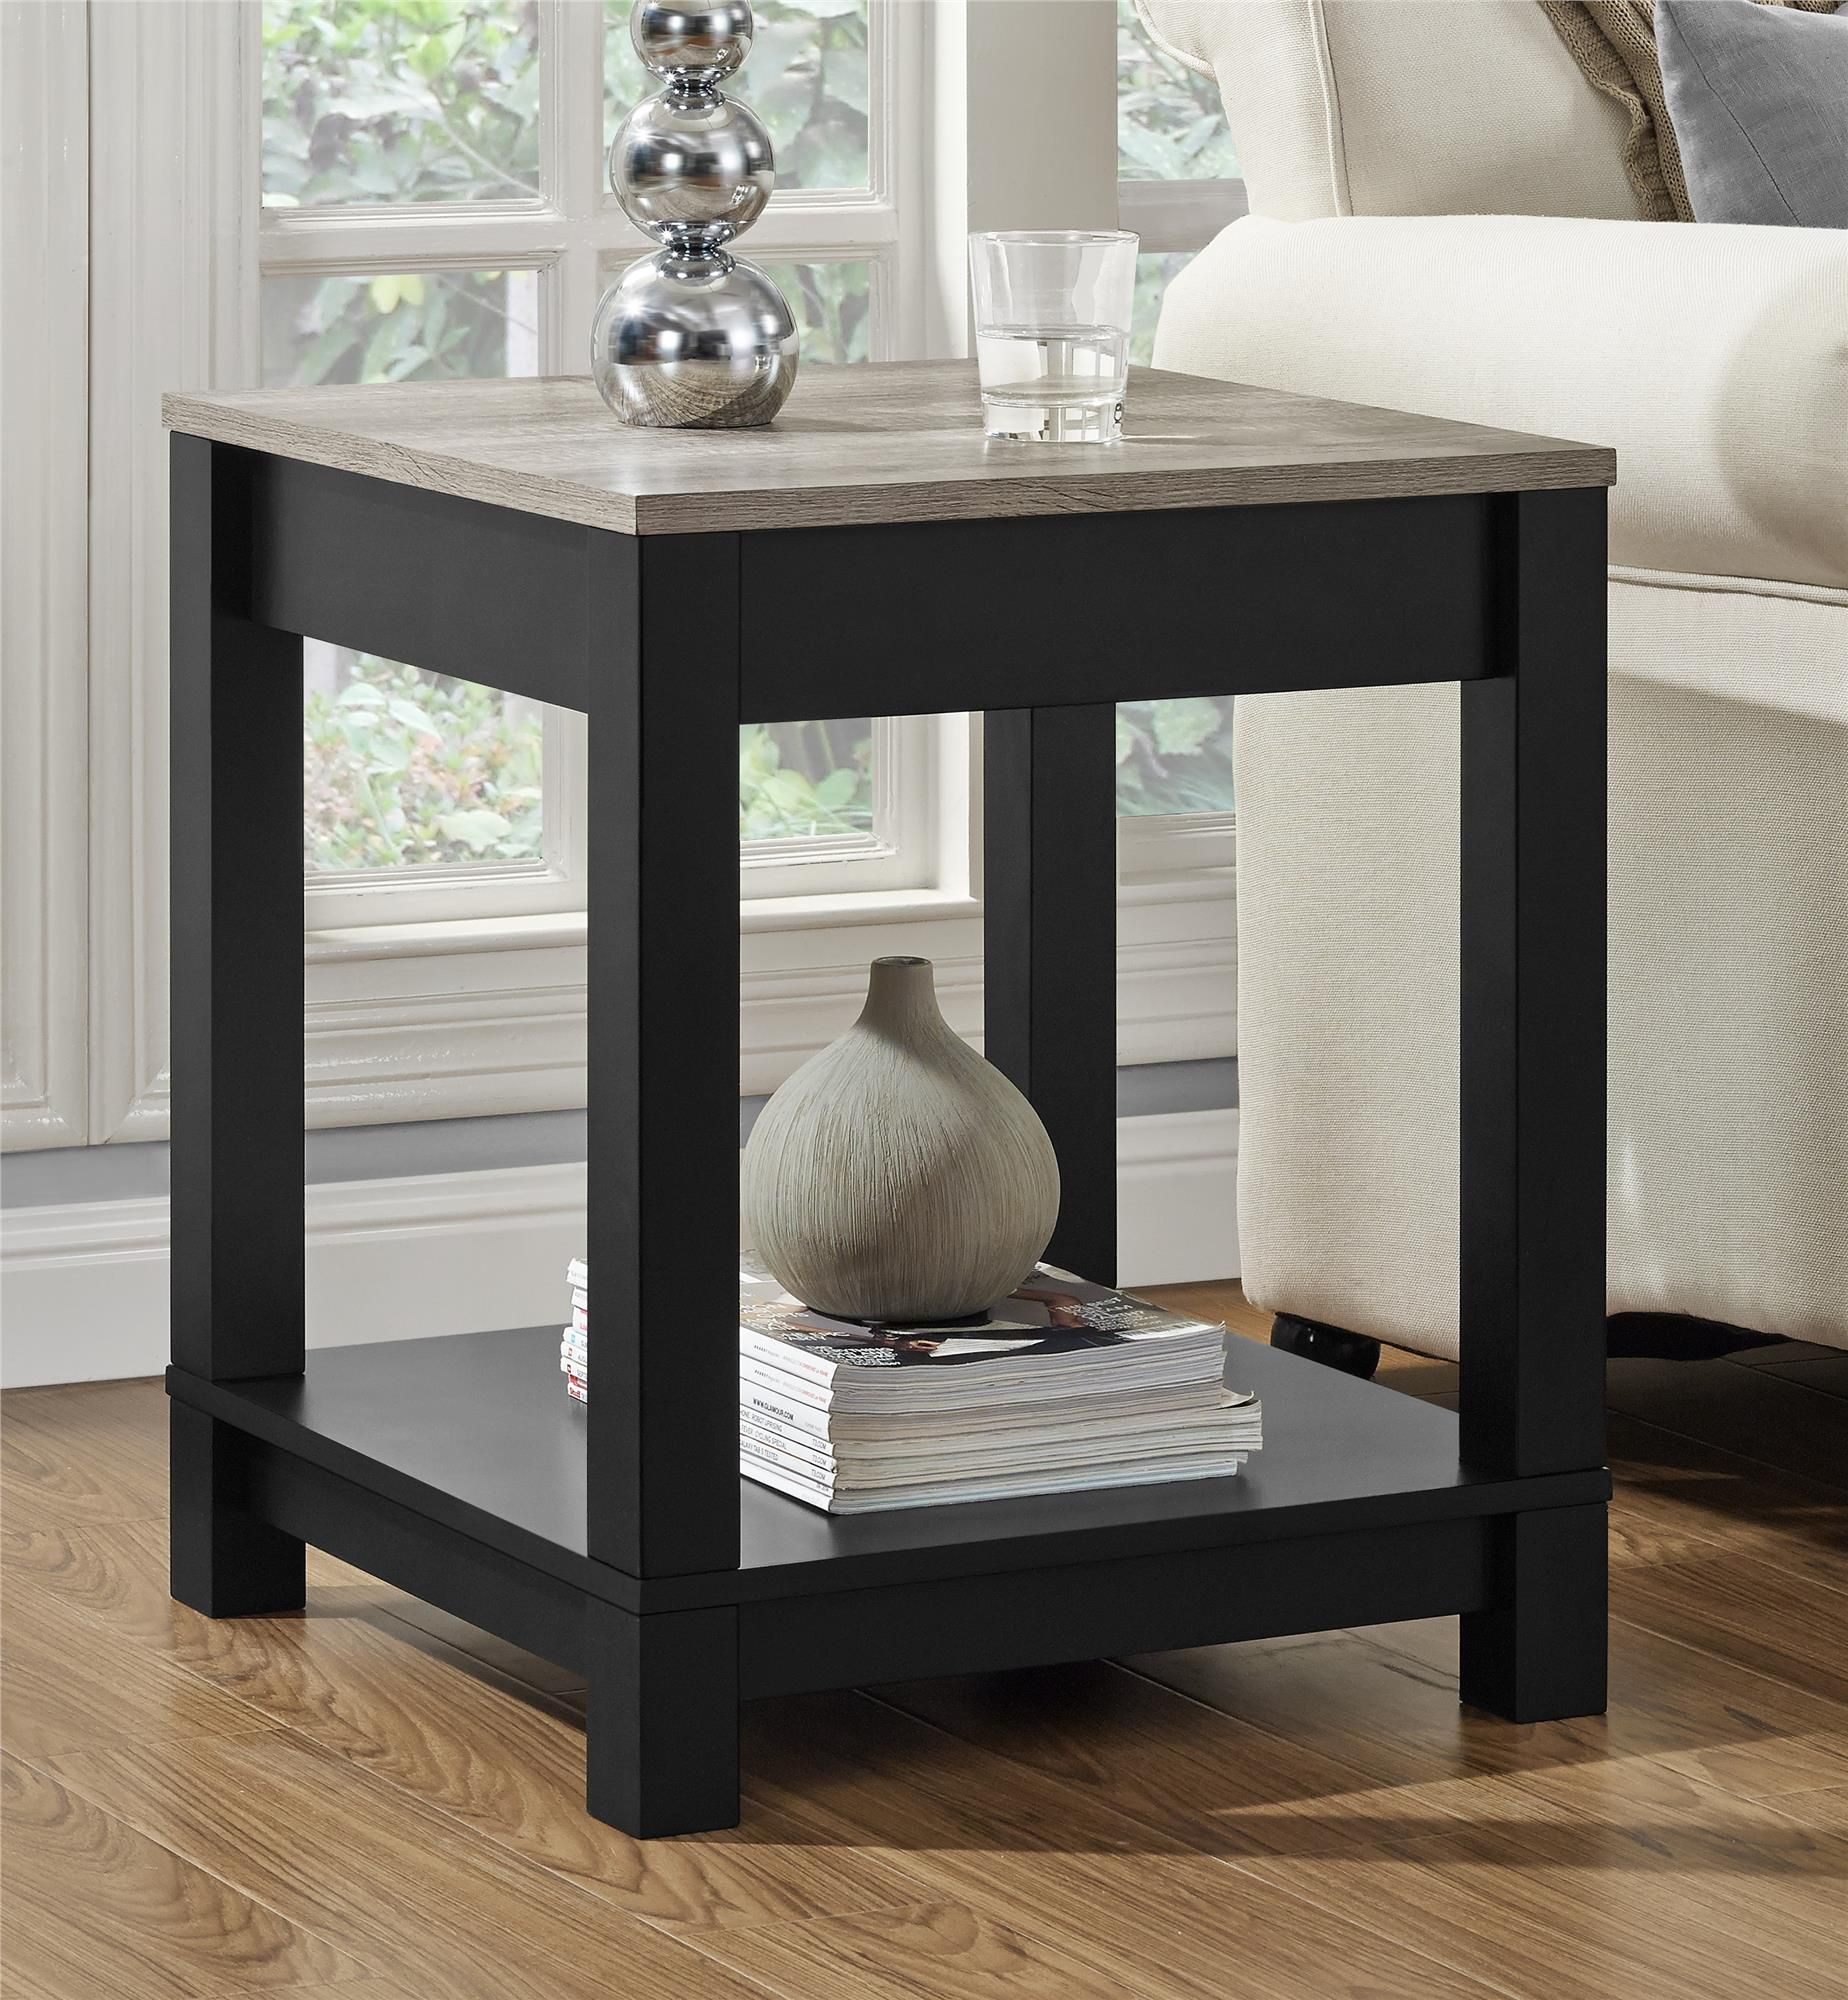 Add Extra Style To Your Living Room With The Ameriwood Home Carver End Table This Item Is Beautiful And Functional The T Sofa End Tables End Tables Furniture